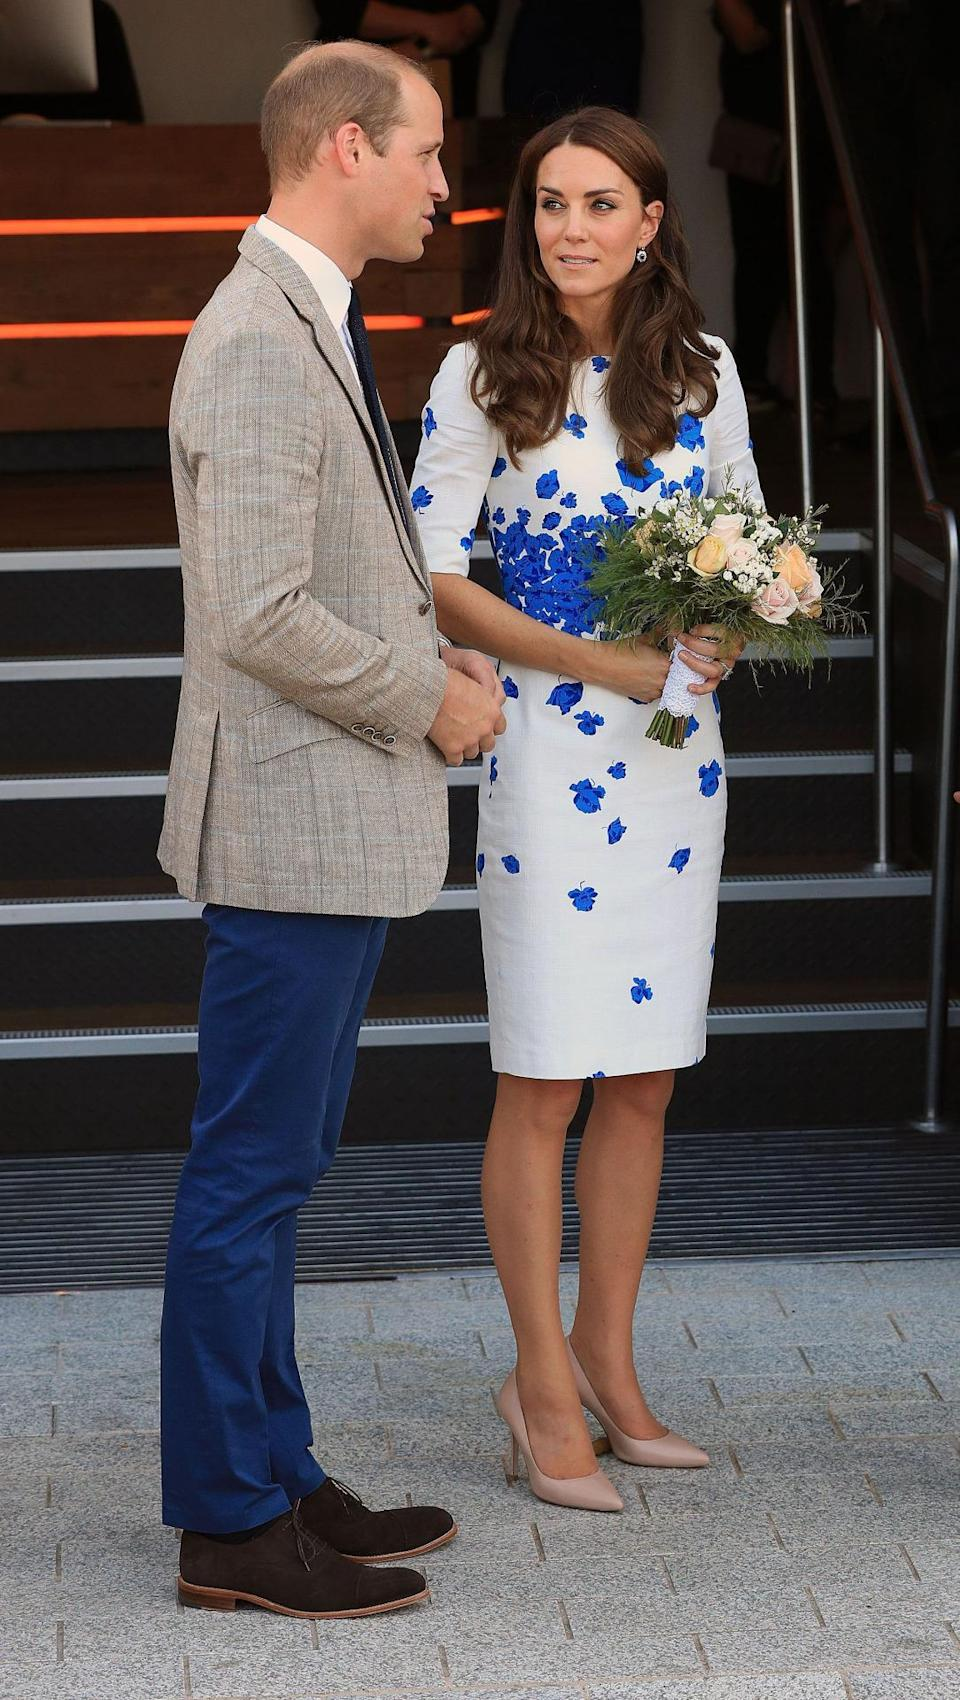 <p>For a tour of Luton's charities and hospices, Kate donned an old L.K. Bennett favourite: a simple white dress finished with a regal blue poppy print. Nude heels complemented the look perfectly.</p><p><i>[Photo: PA]</i></p>